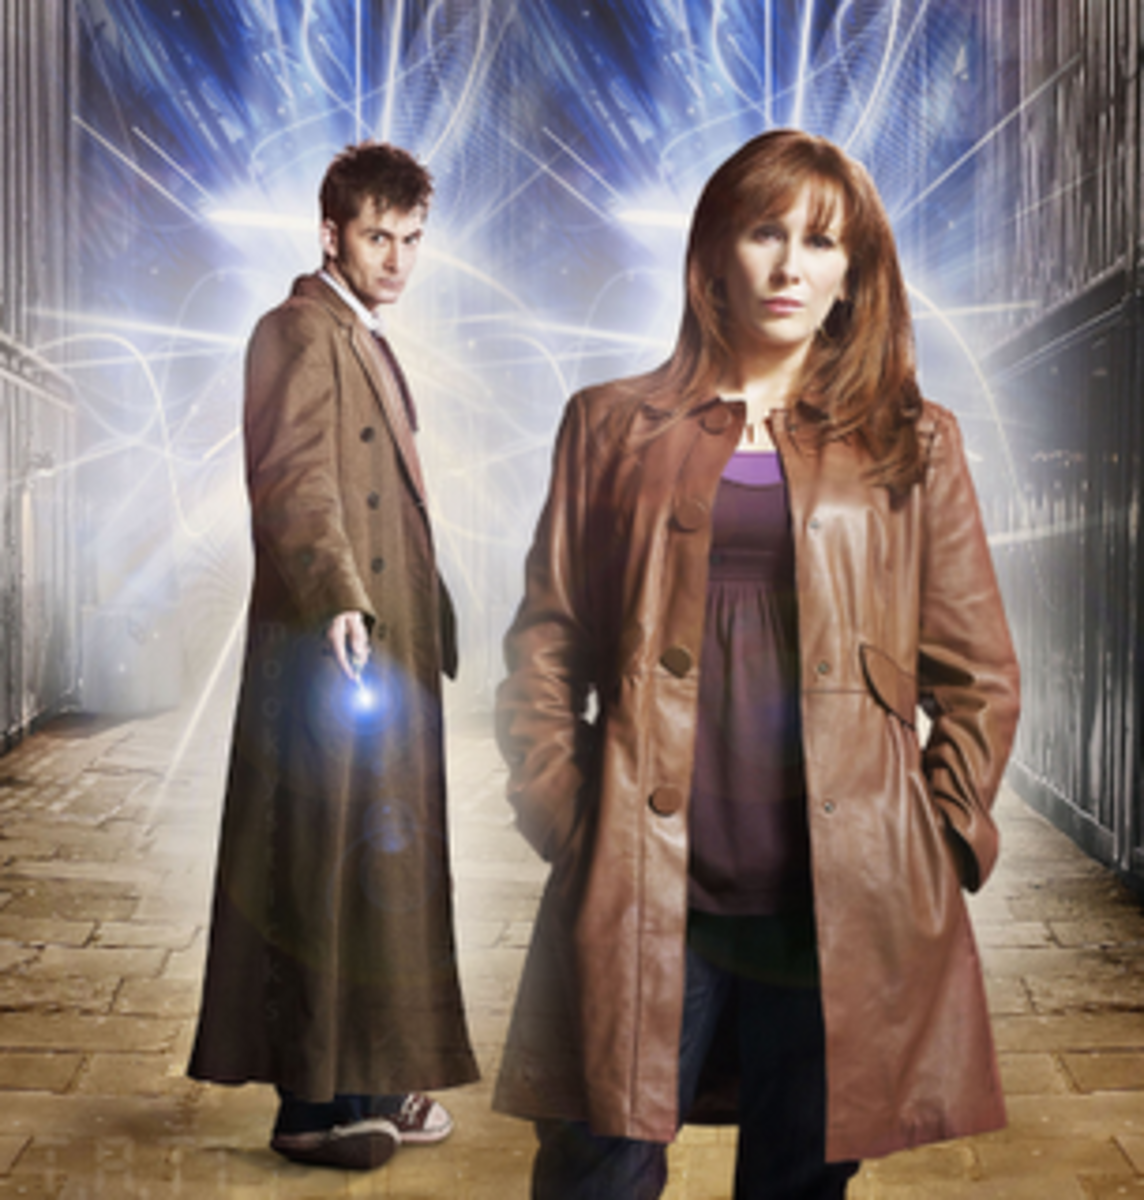 David Tennant as the 10th Doctor and my favorite companion, Donna (Catherine Tate)